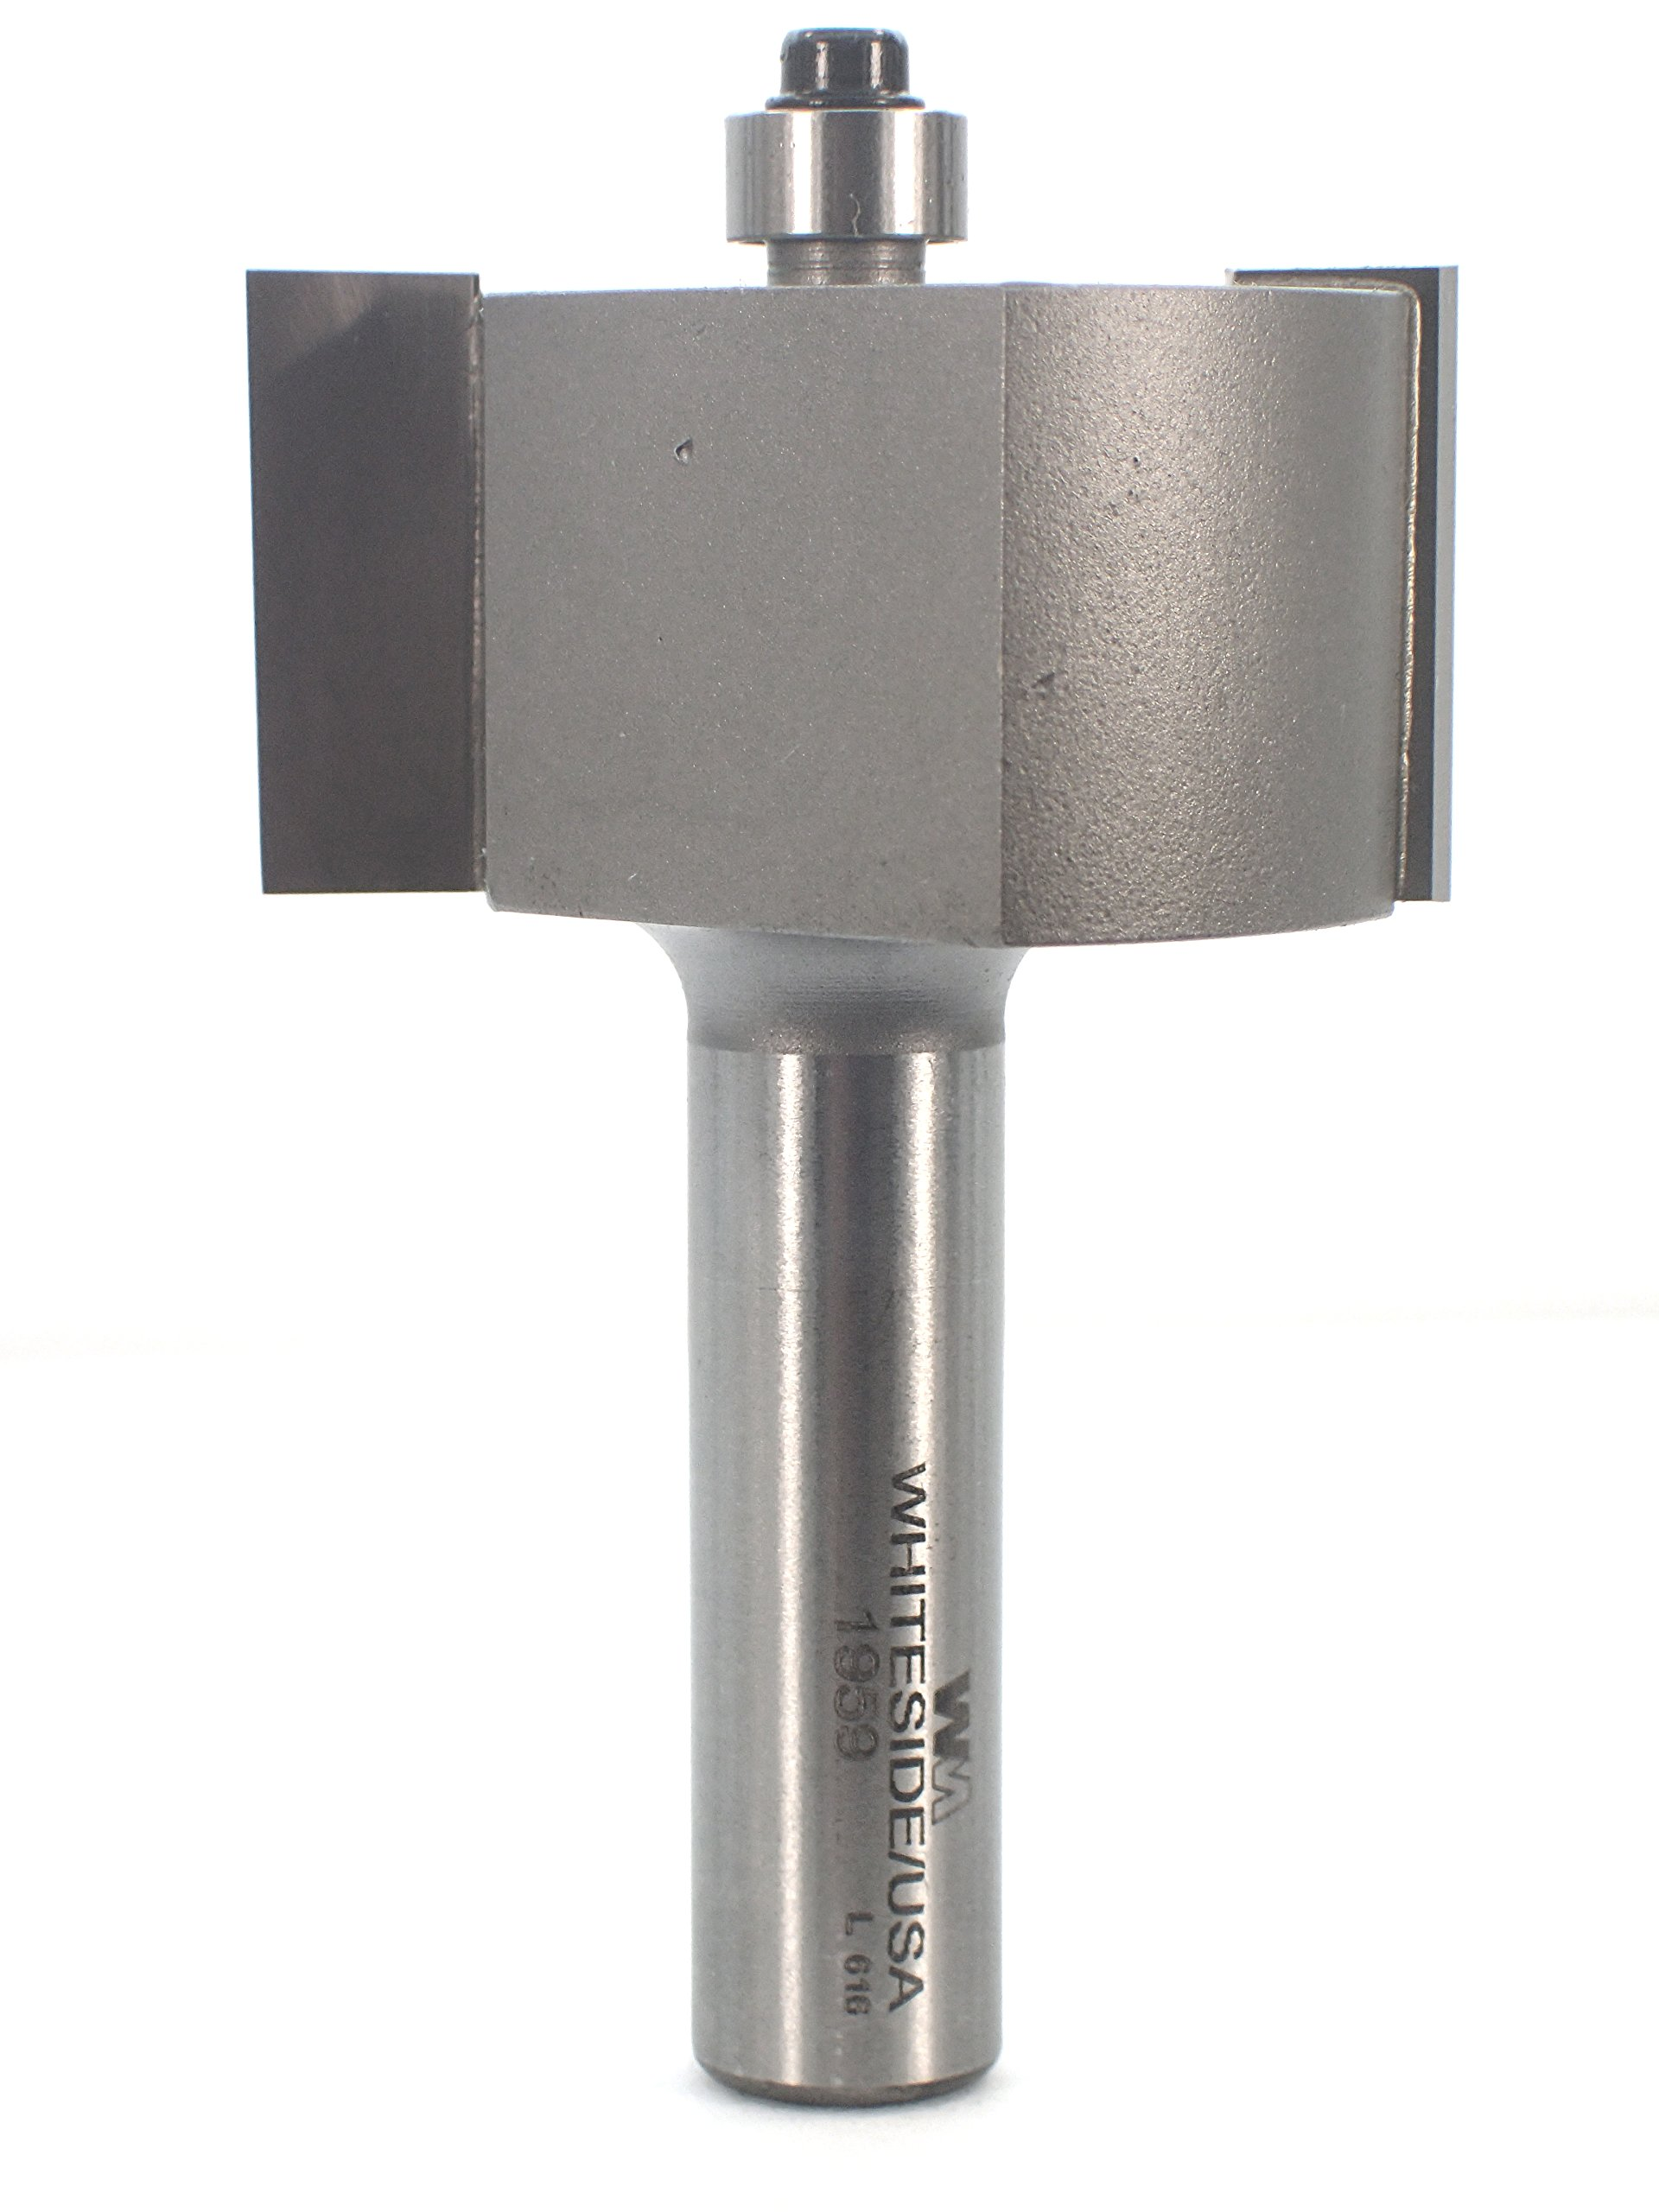 Whiteside Router Bits 1959 Rabbet Bit with 1-7/8-Inch Large Diameter and 1-Inch Cutting Length